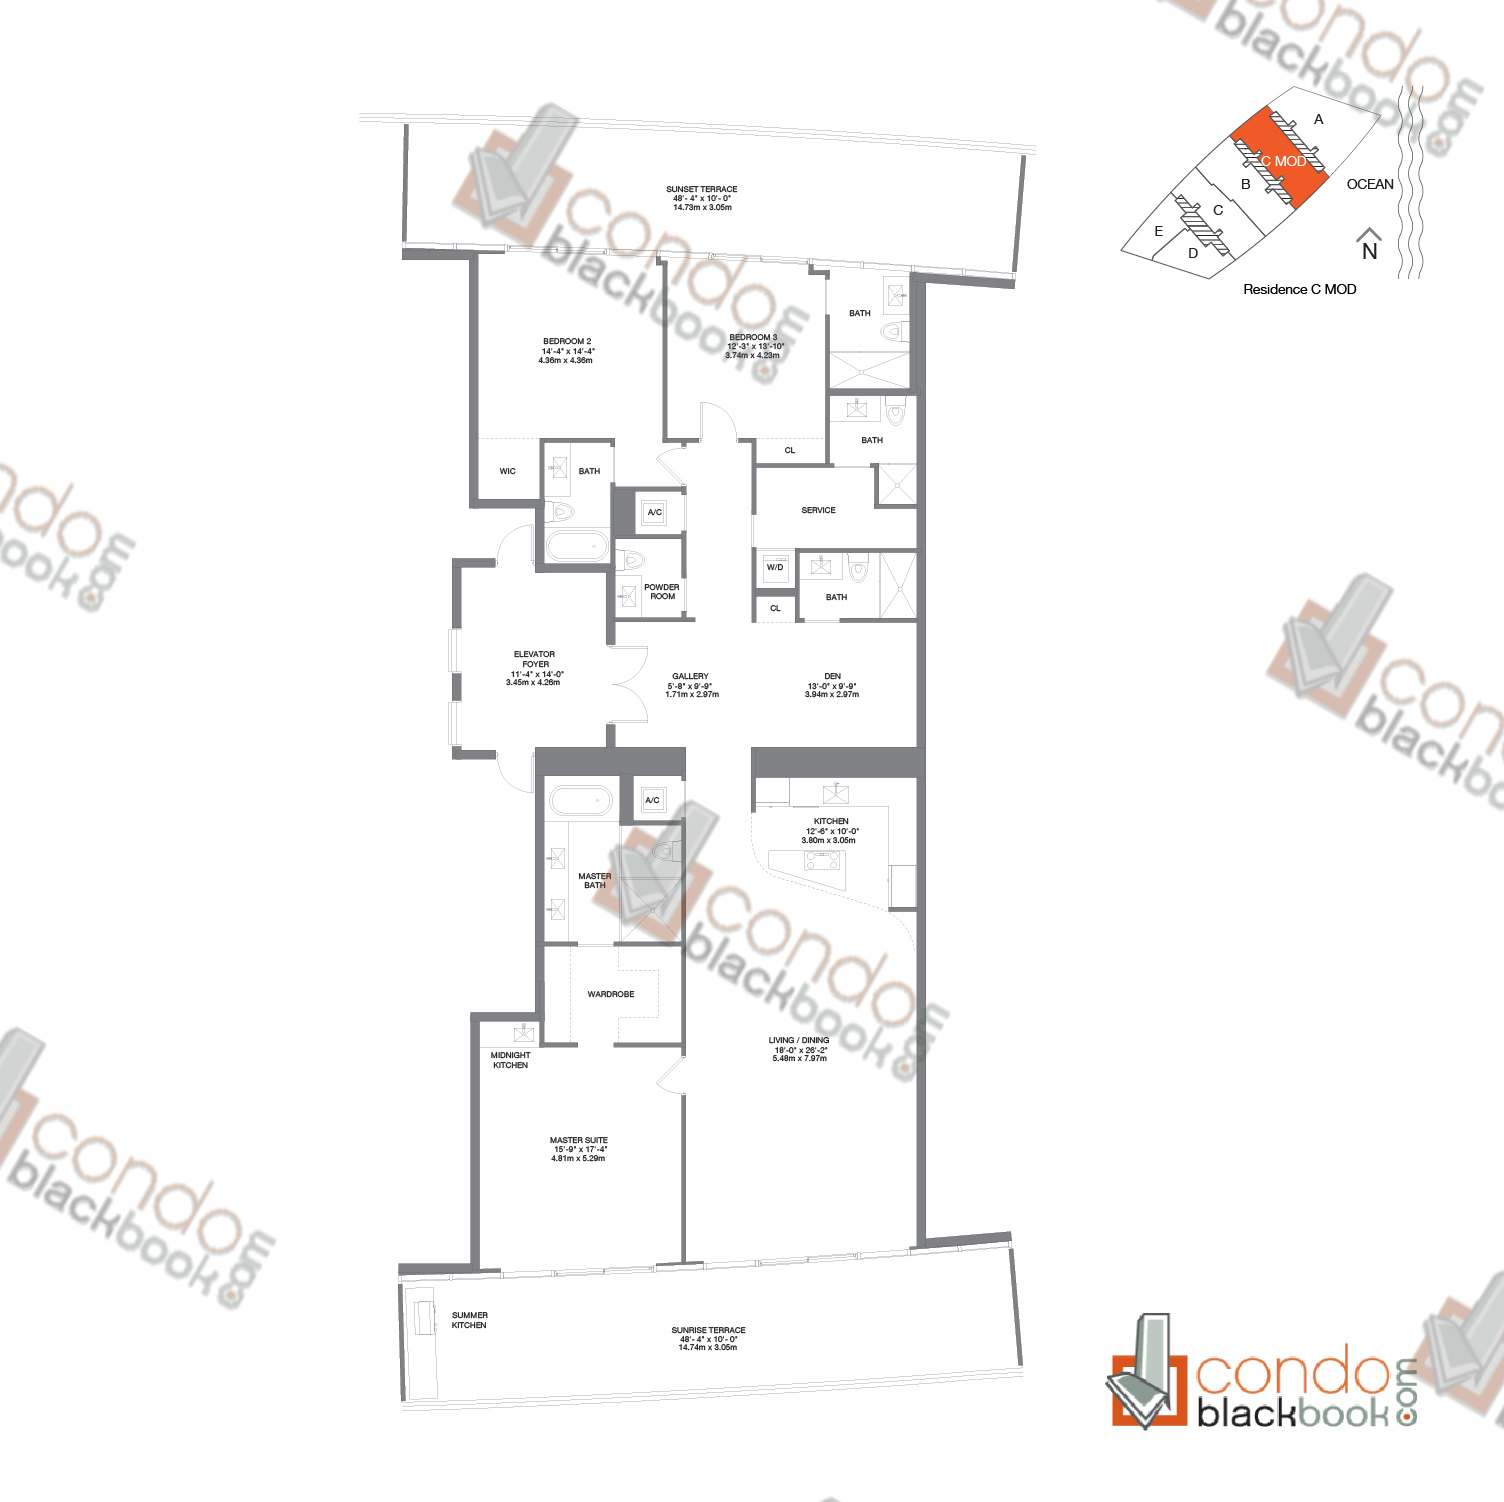 Floor plan for Residences by Armani Casa Sunny Isles Beach, model Residence C MOD, line C, 3/5.5 + den bedrooms, 3,050 sq ft